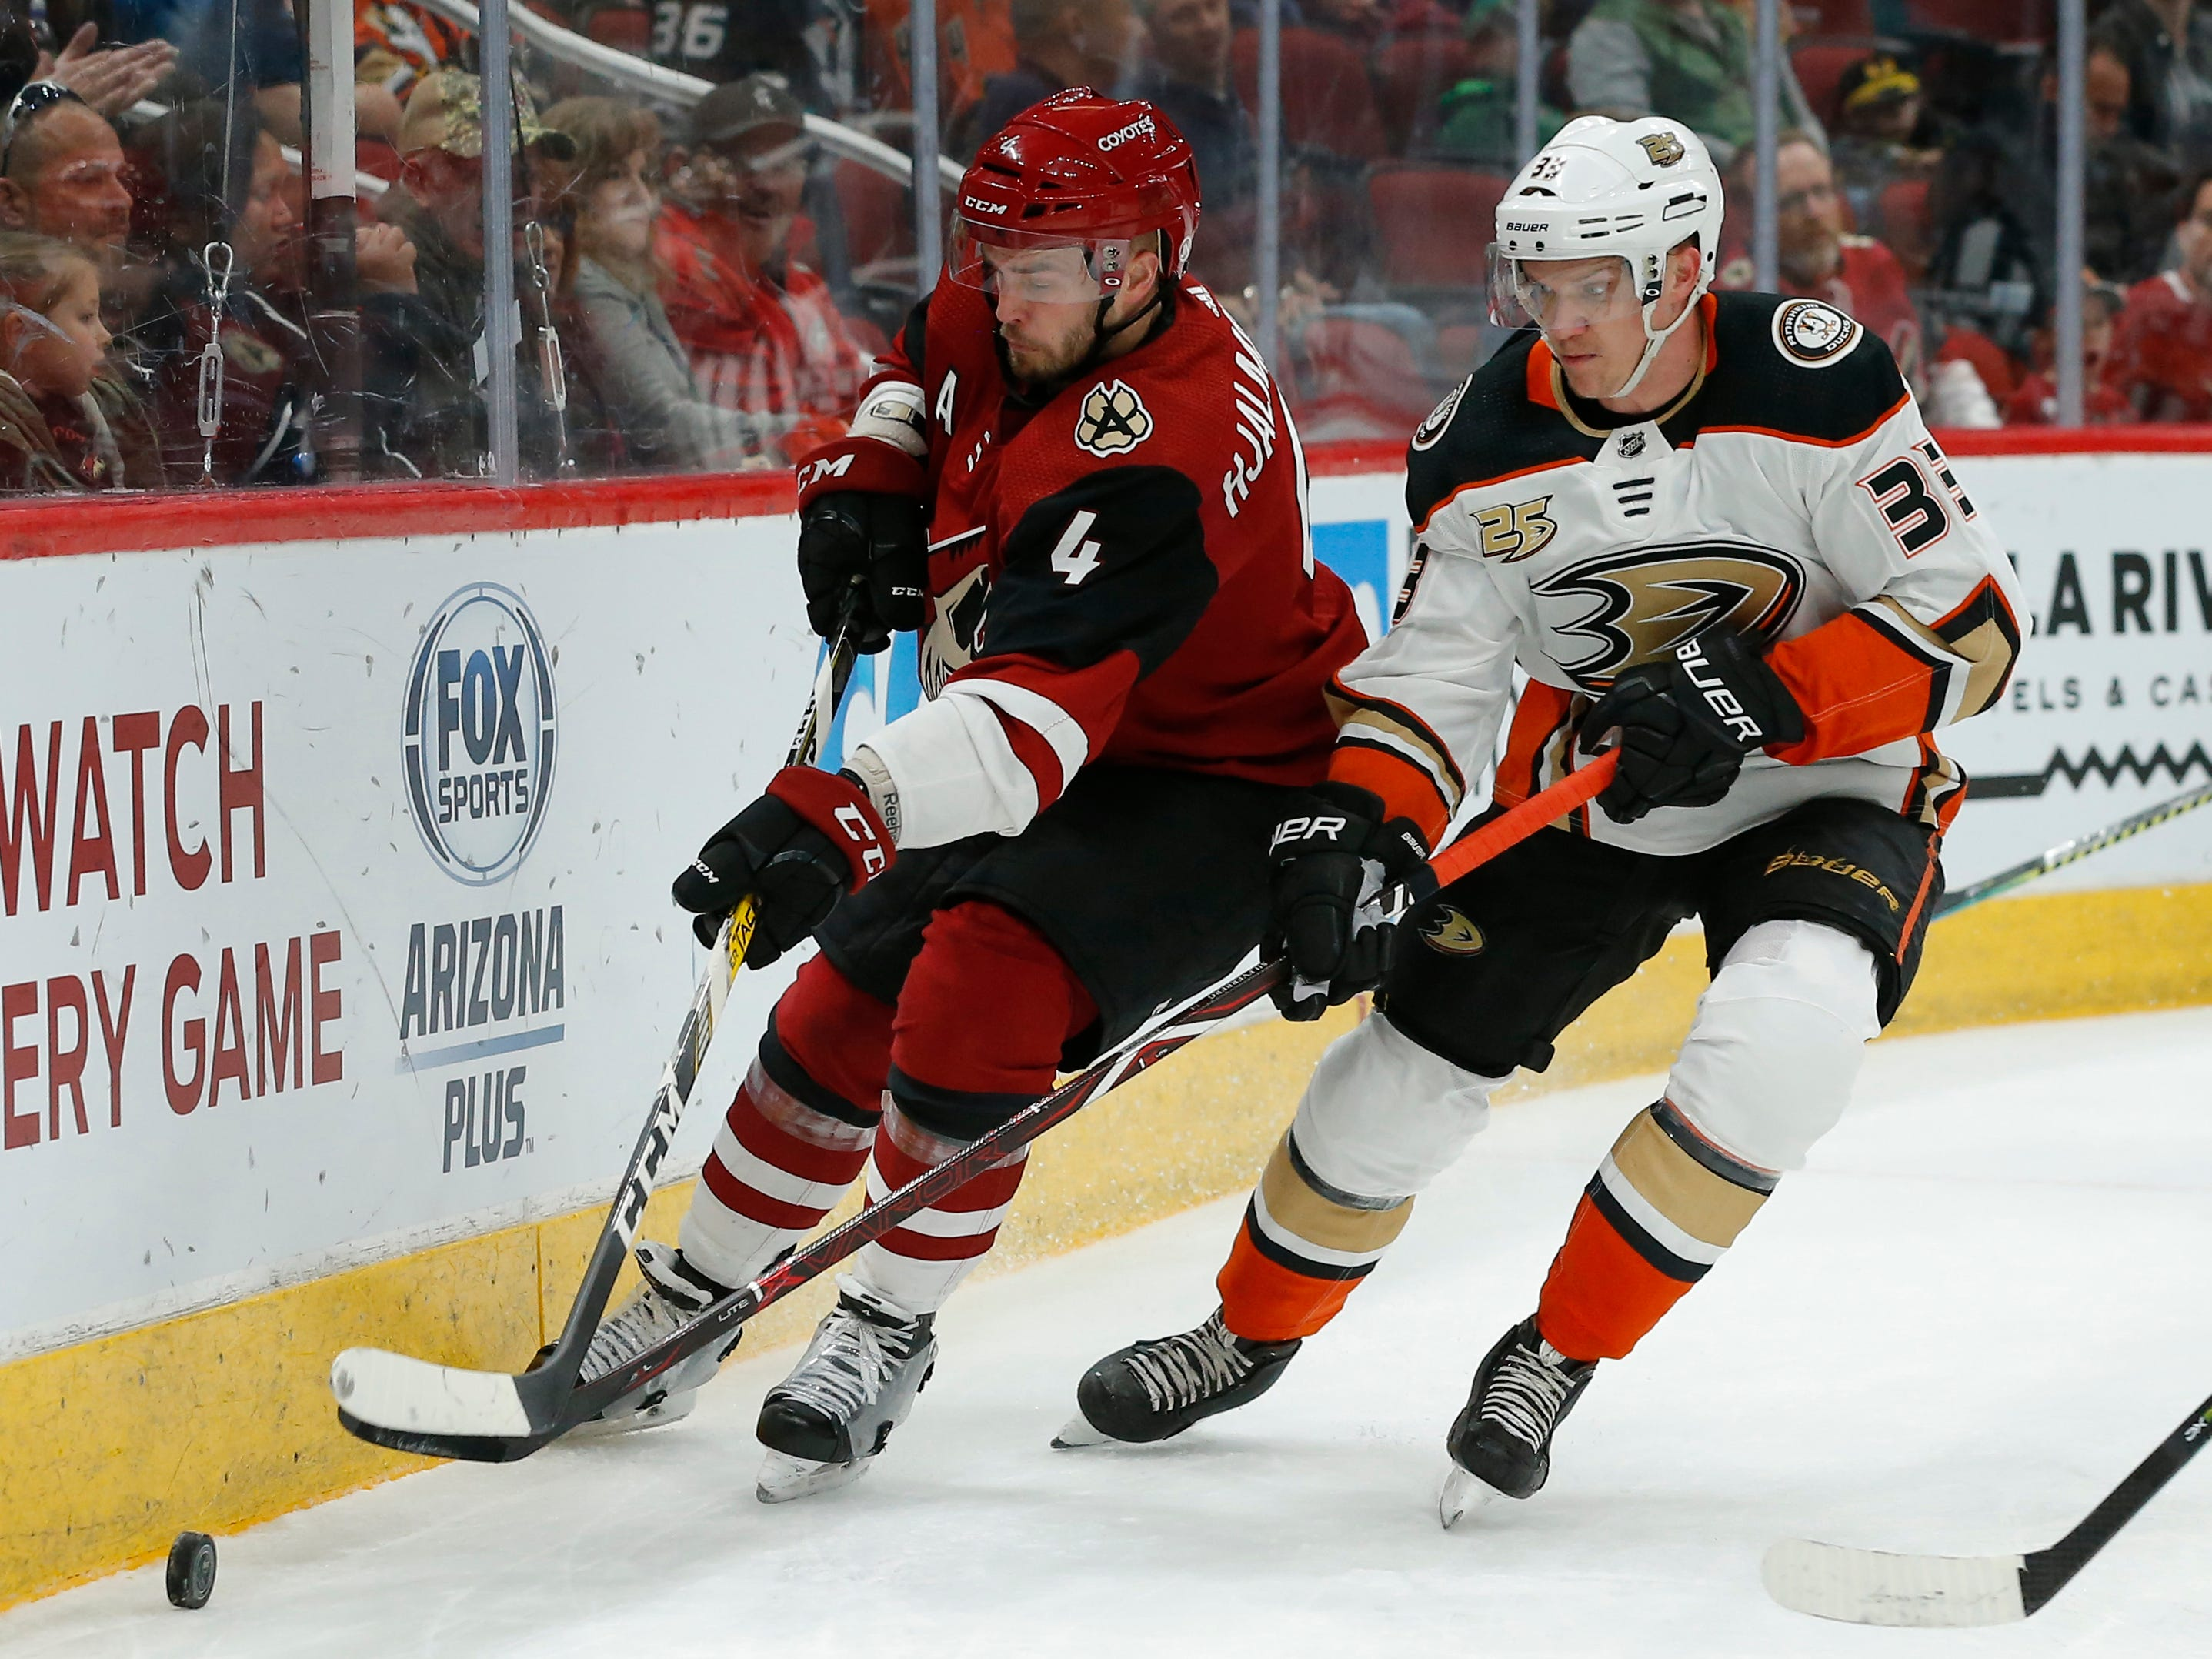 Arizona Coyotes defenseman Niklas Hjalmarsson (4) and Anaheim Ducks right wing Jakob Silfverberg (33) race for the puck in the first period during an NHL hockey game, Thursday, March 14, 2019, in Glendale, Ariz.